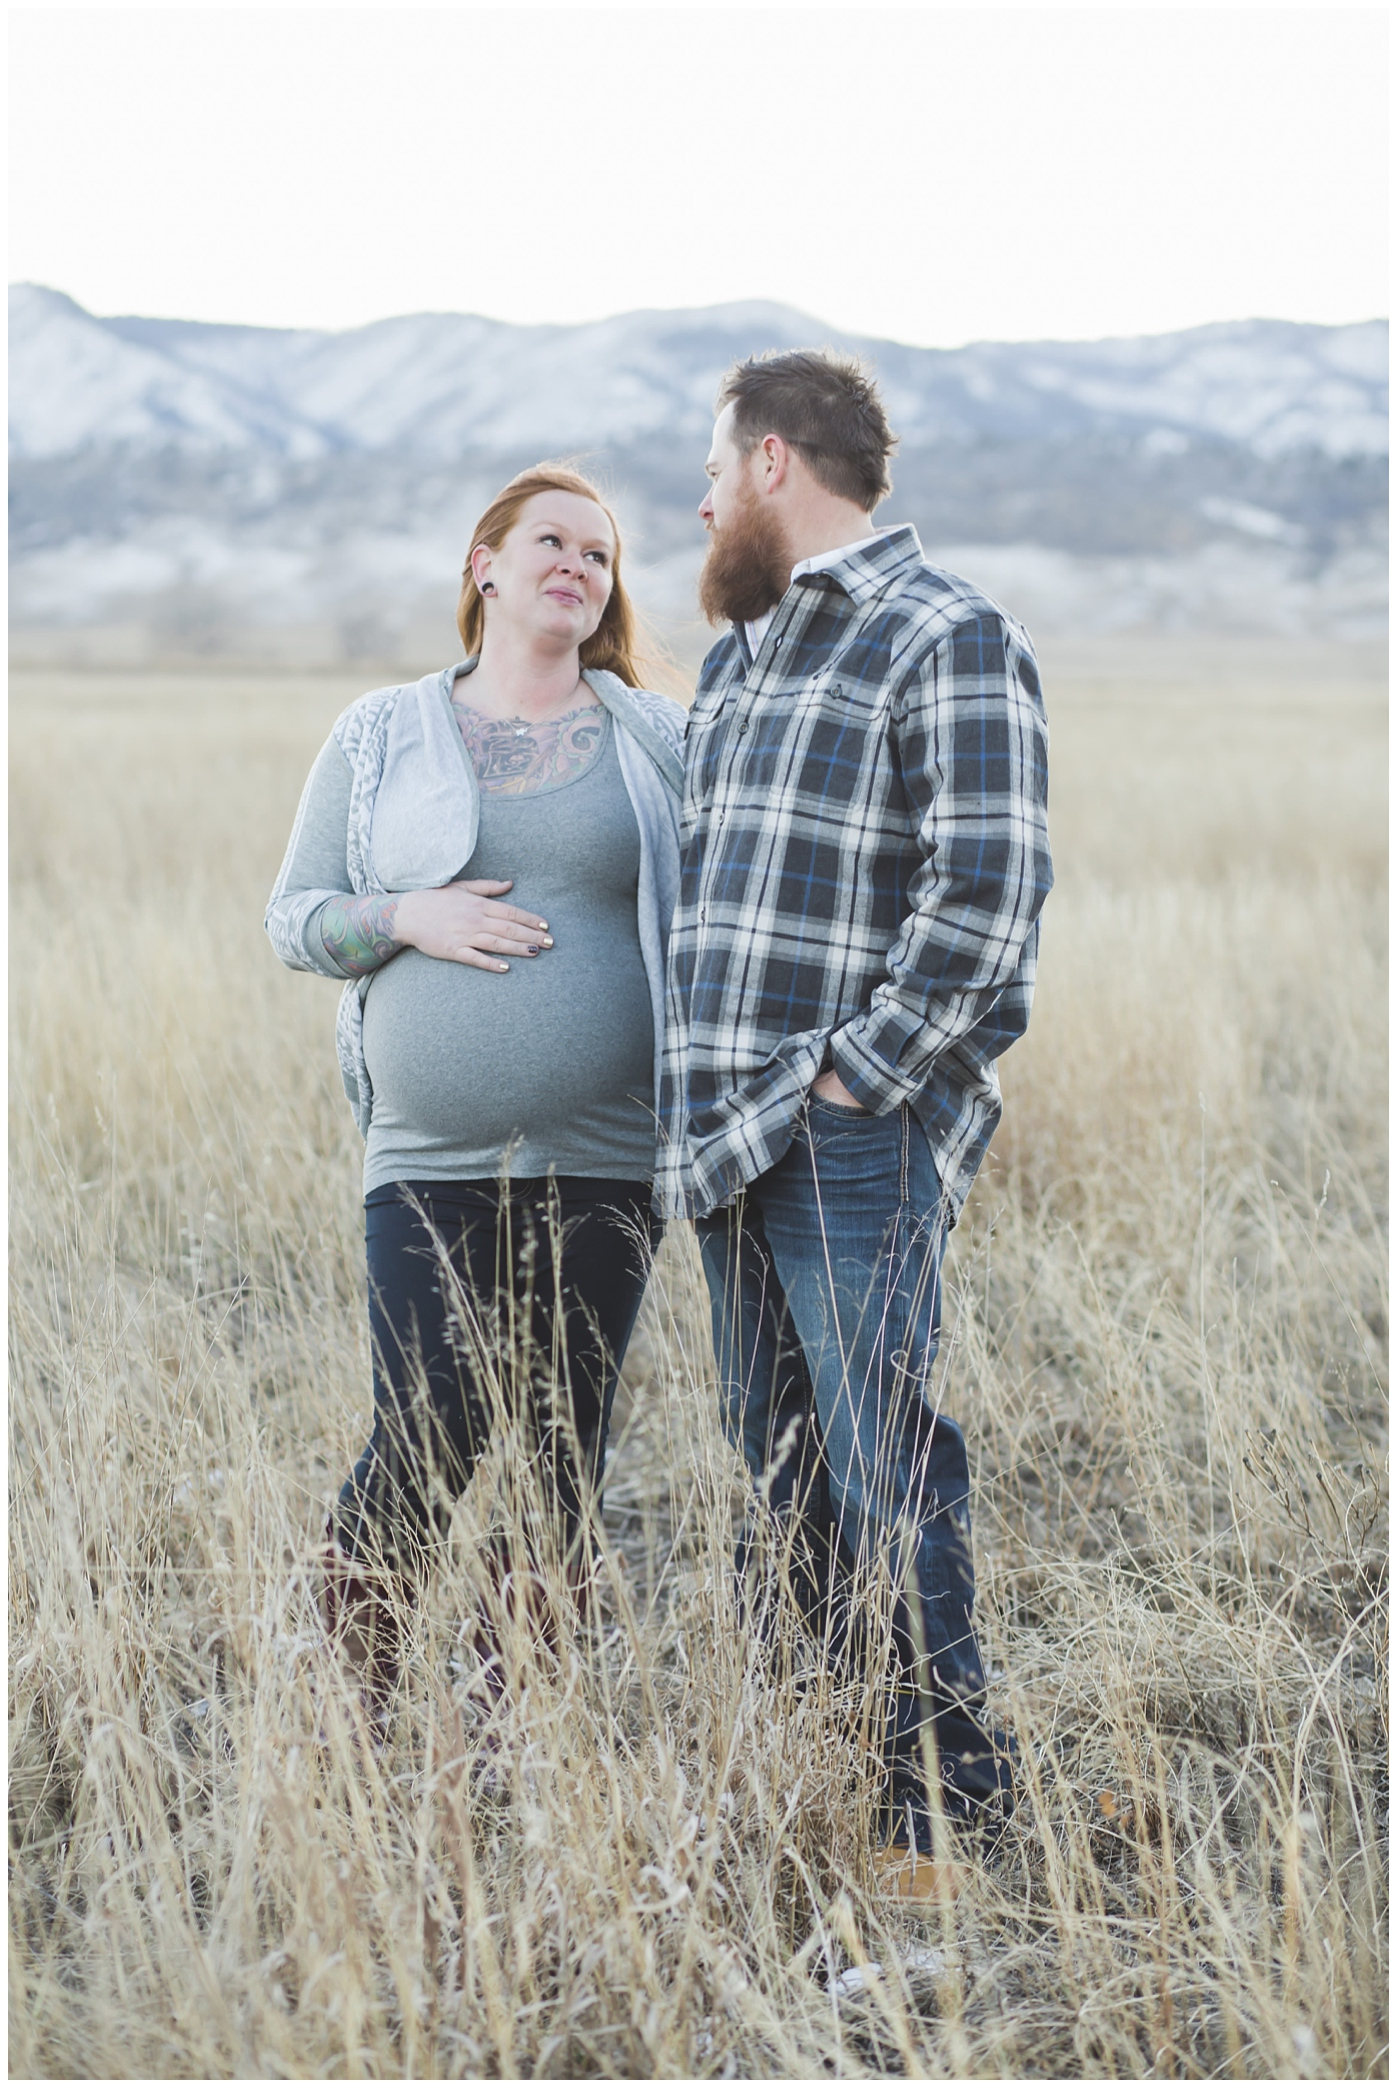 20150217MaternityWallKatie107_web-fort-collins-maternity-photographer.jpg